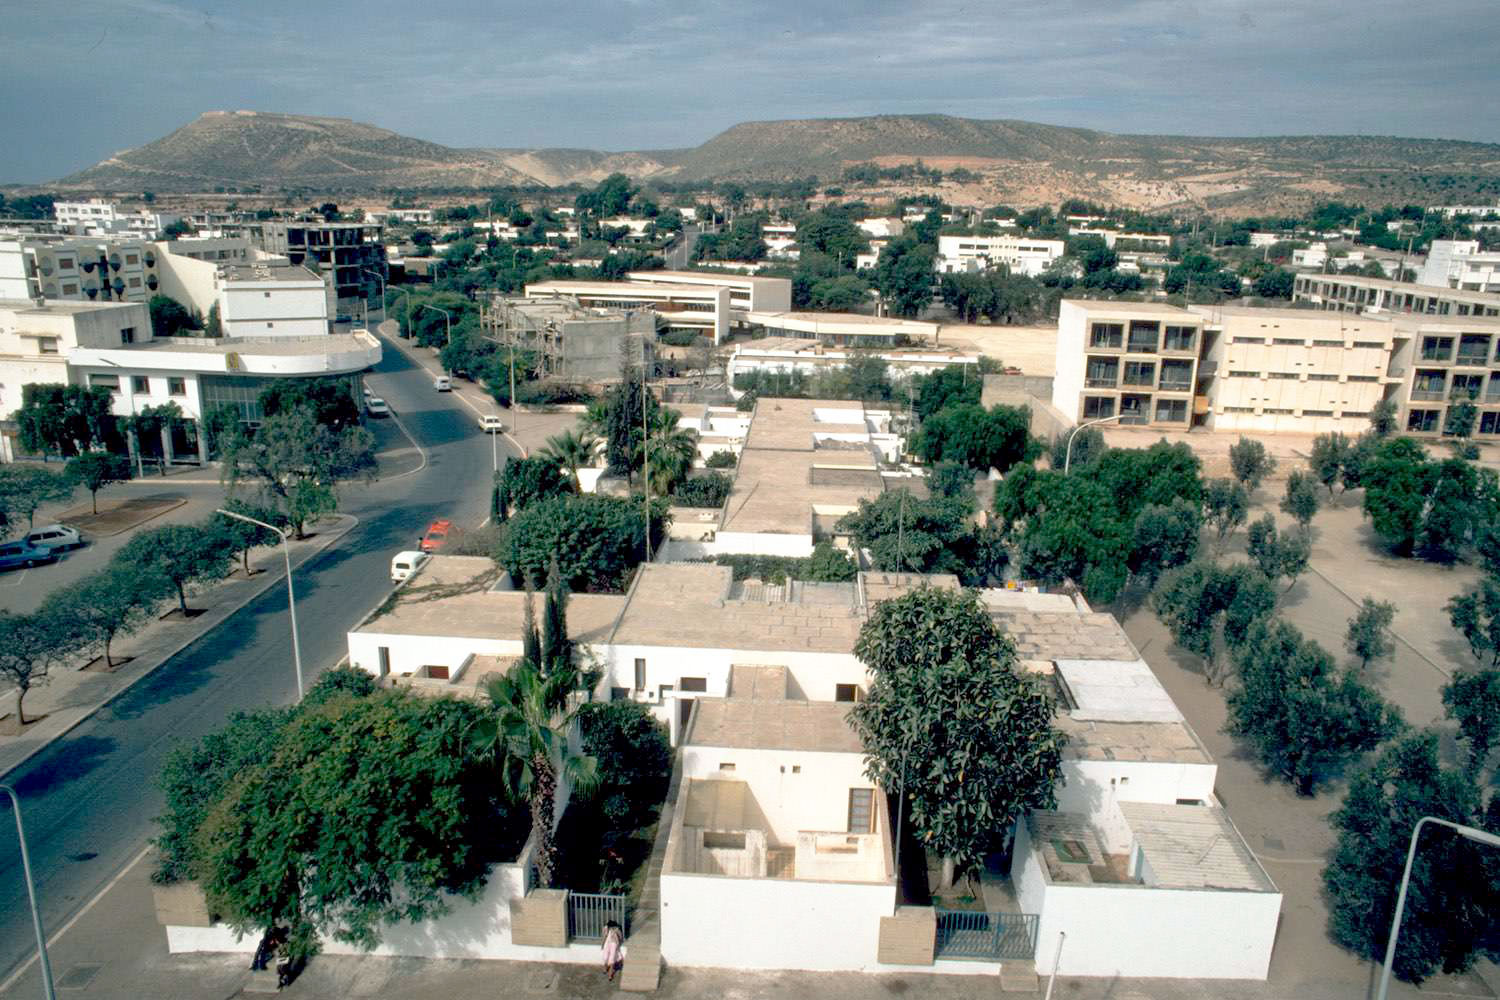 Courtyard Houses Of Agadir Aearial View Of Housing Blocks With Mountains In The Background Archnet